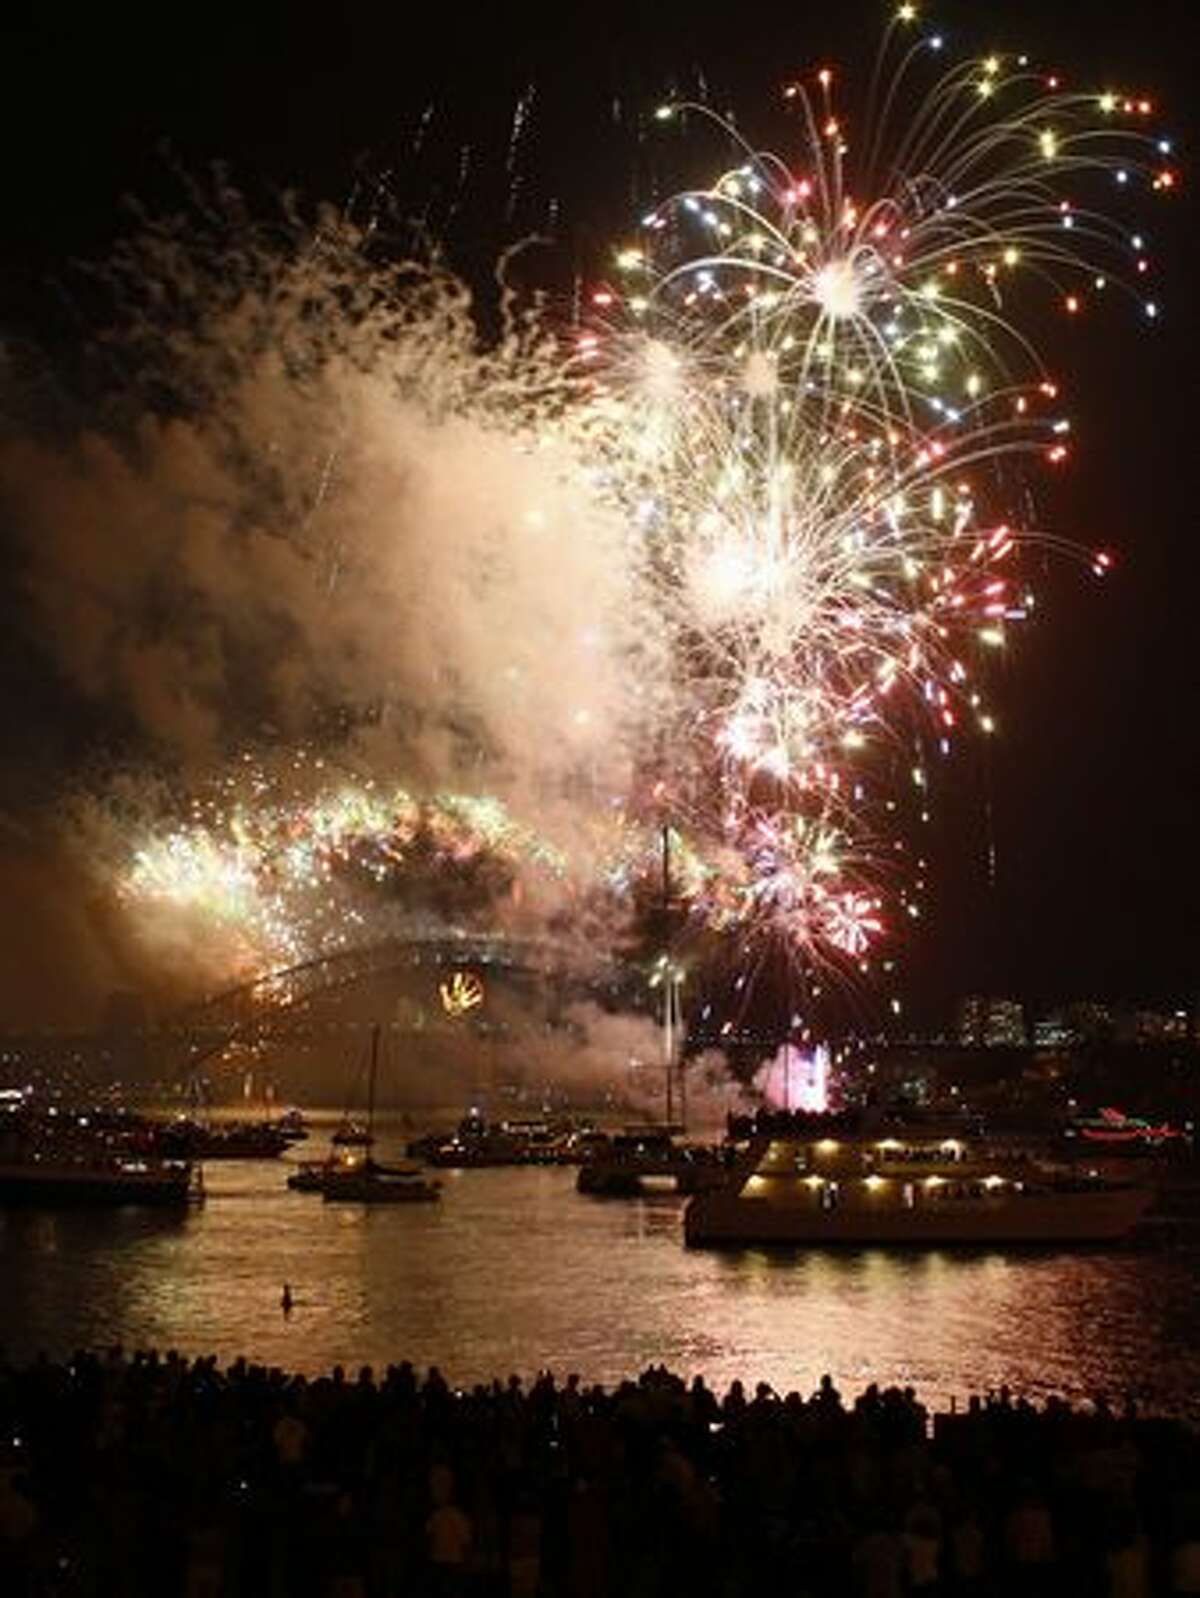 Fireworks erupt over the Sydney Harbour bridge during New Year's in Sydney on January 1, 2011.